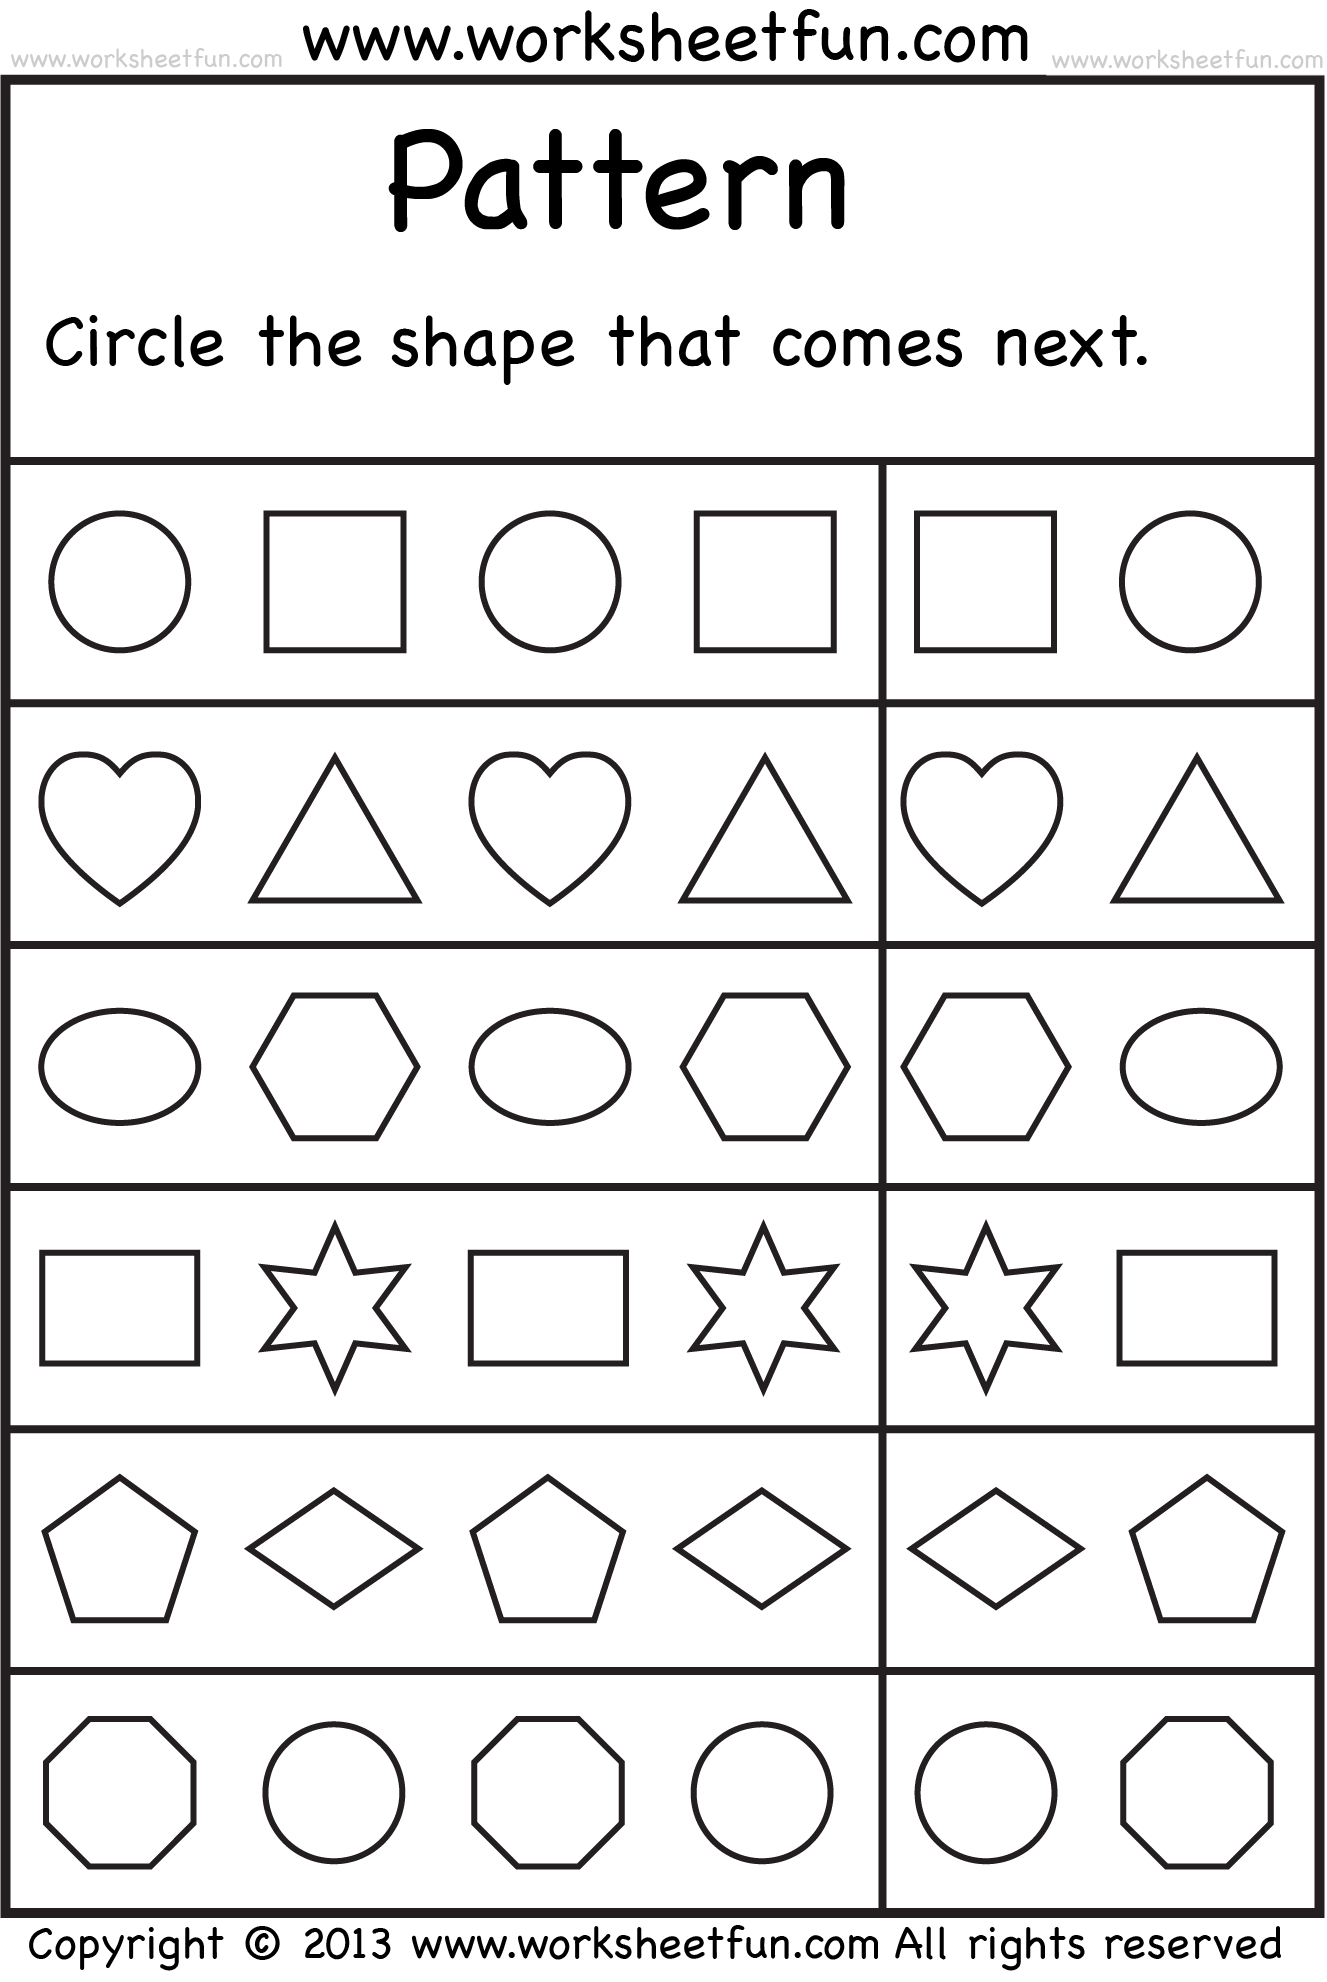 Weirdmailus  Stunning  Images About School Worksheets On Pinterest  Number Words  With Exciting  Images About School Worksheets On Pinterest  Number Words Alphabet Worksheets And Free Printable Kindergarten Worksheets With Enchanting Clock Face Worksheet Also Vocabulary Worksheet Answers In Addition Skills Worksheet Directed Reading Answers And Envision Math Grade  Worksheets As Well As Fairy Tales Worksheets Additionally Courage Worksheets From Pinterestcom With Weirdmailus  Exciting  Images About School Worksheets On Pinterest  Number Words  With Enchanting  Images About School Worksheets On Pinterest  Number Words Alphabet Worksheets And Free Printable Kindergarten Worksheets And Stunning Clock Face Worksheet Also Vocabulary Worksheet Answers In Addition Skills Worksheet Directed Reading Answers From Pinterestcom